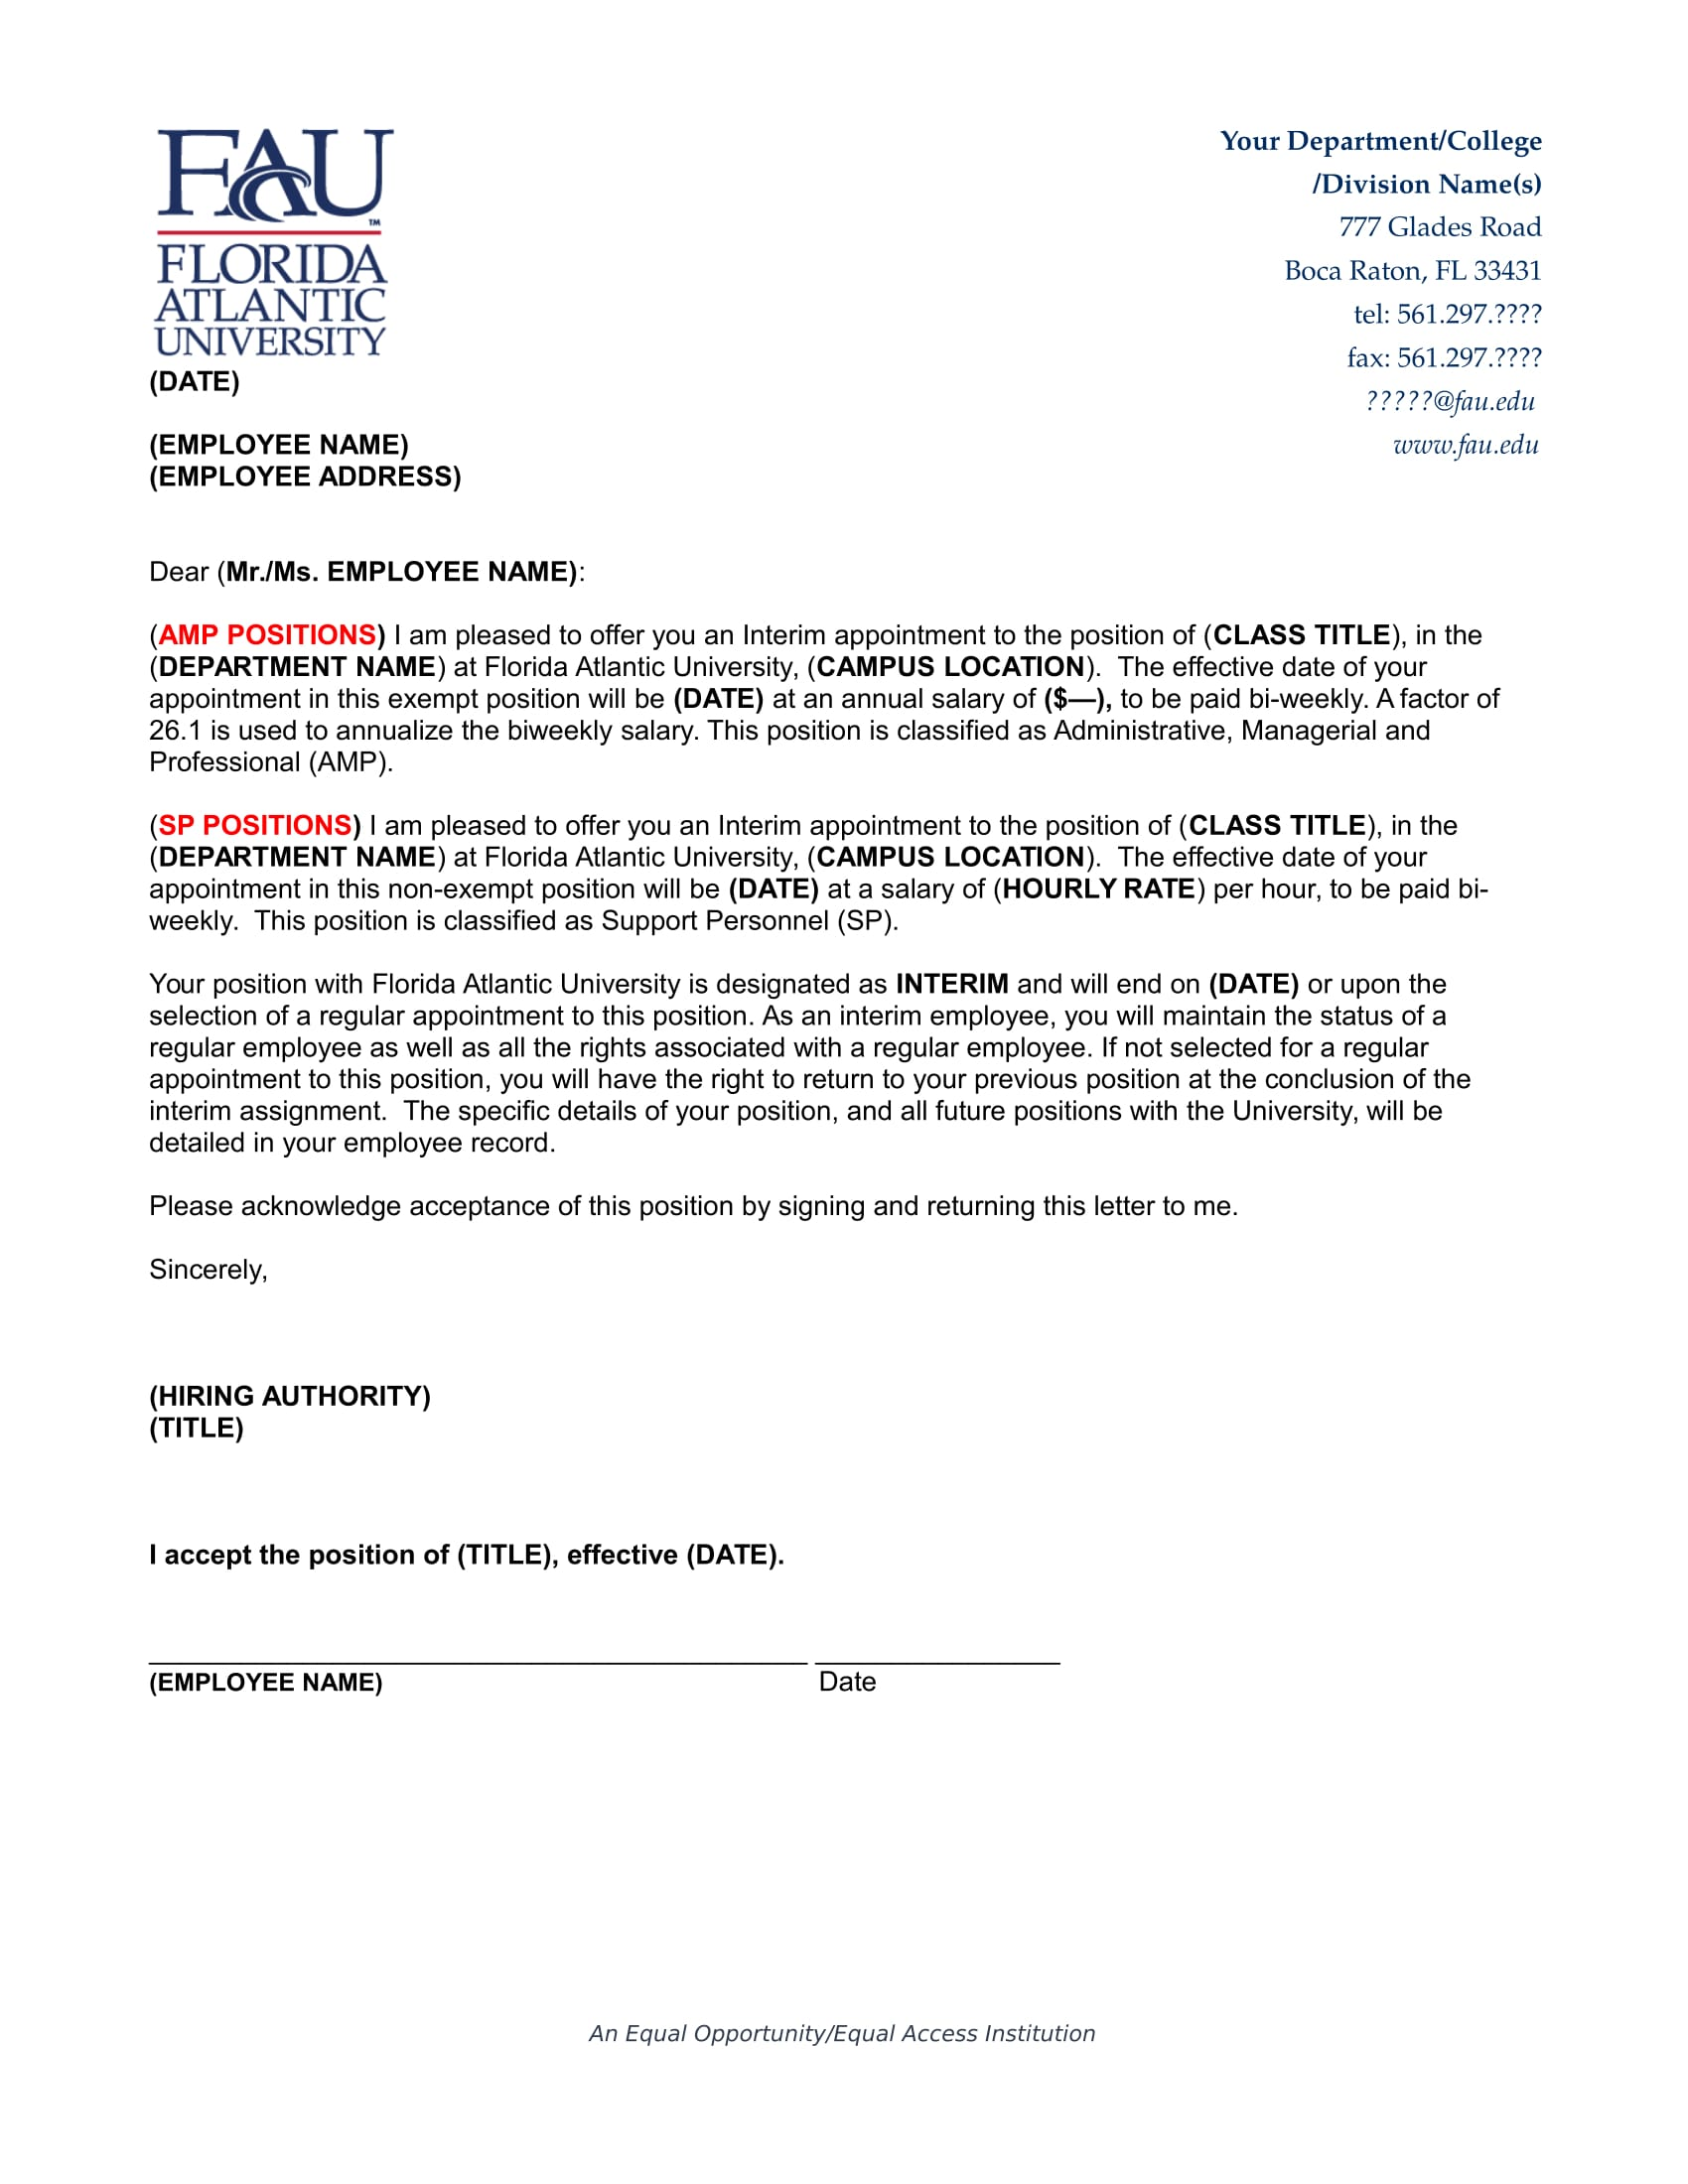 interim appointment letter